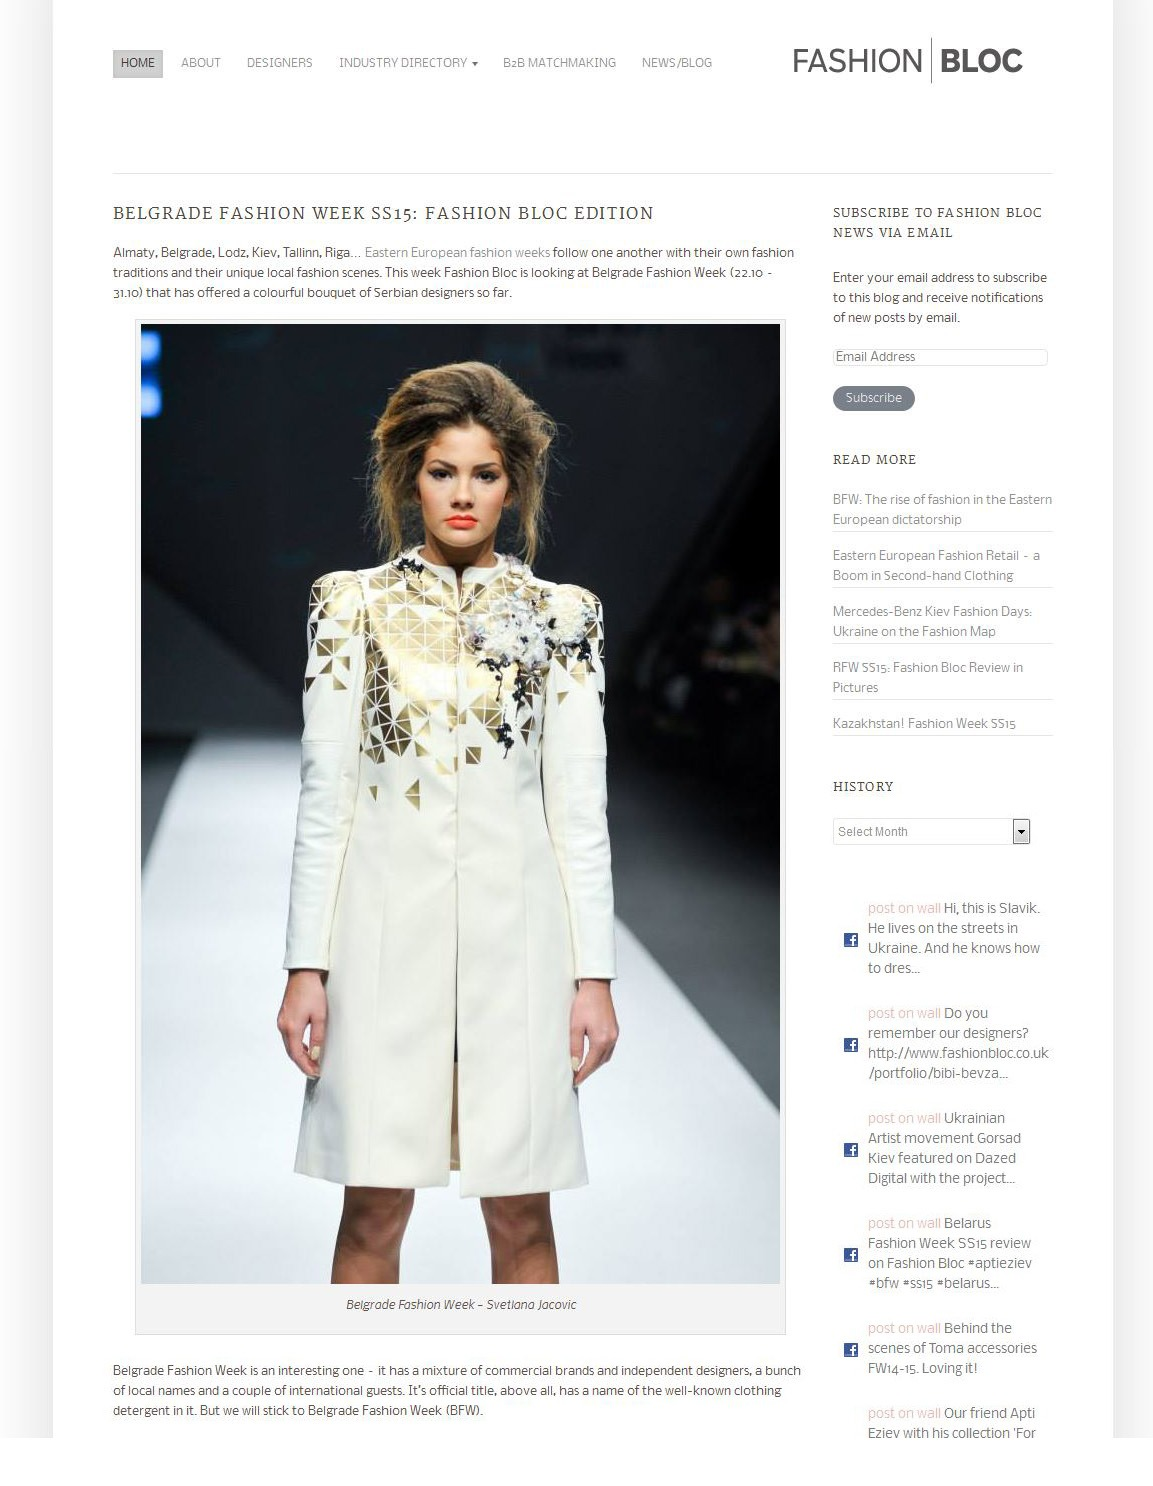 FASHIONBLOCK.CO.UK, November 2014